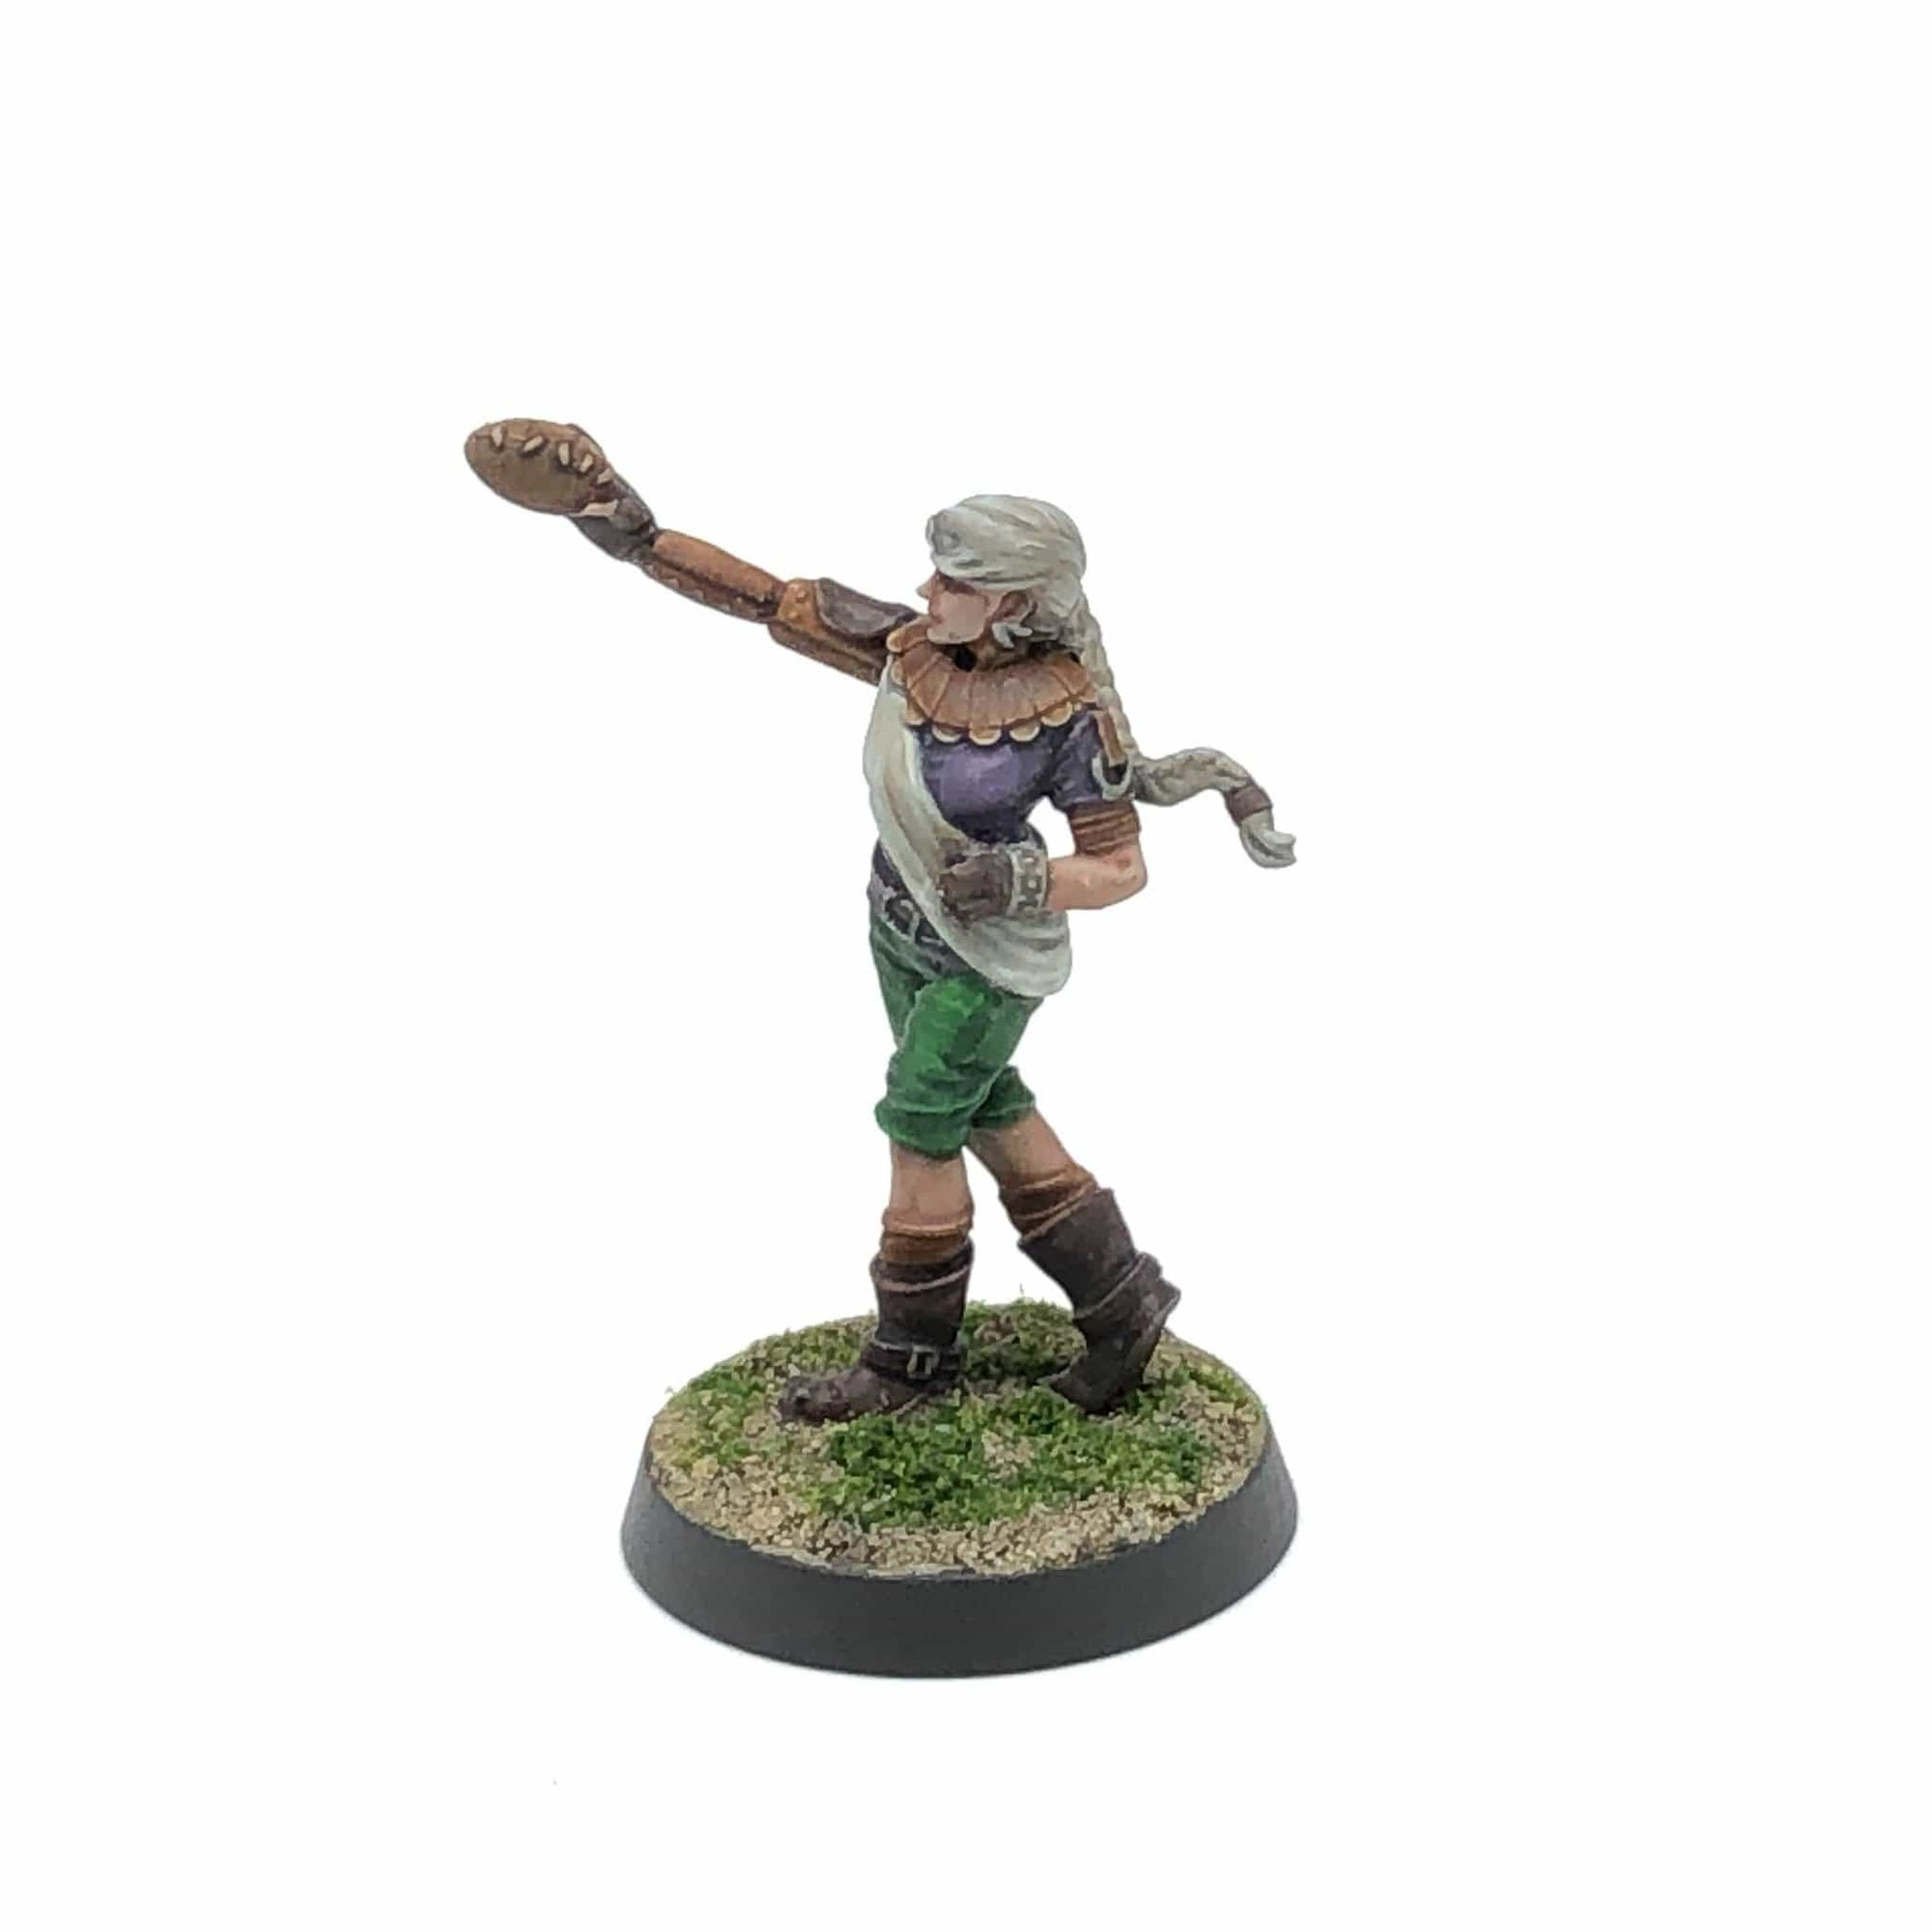 Exit 23 Games Miniature Thrower 2